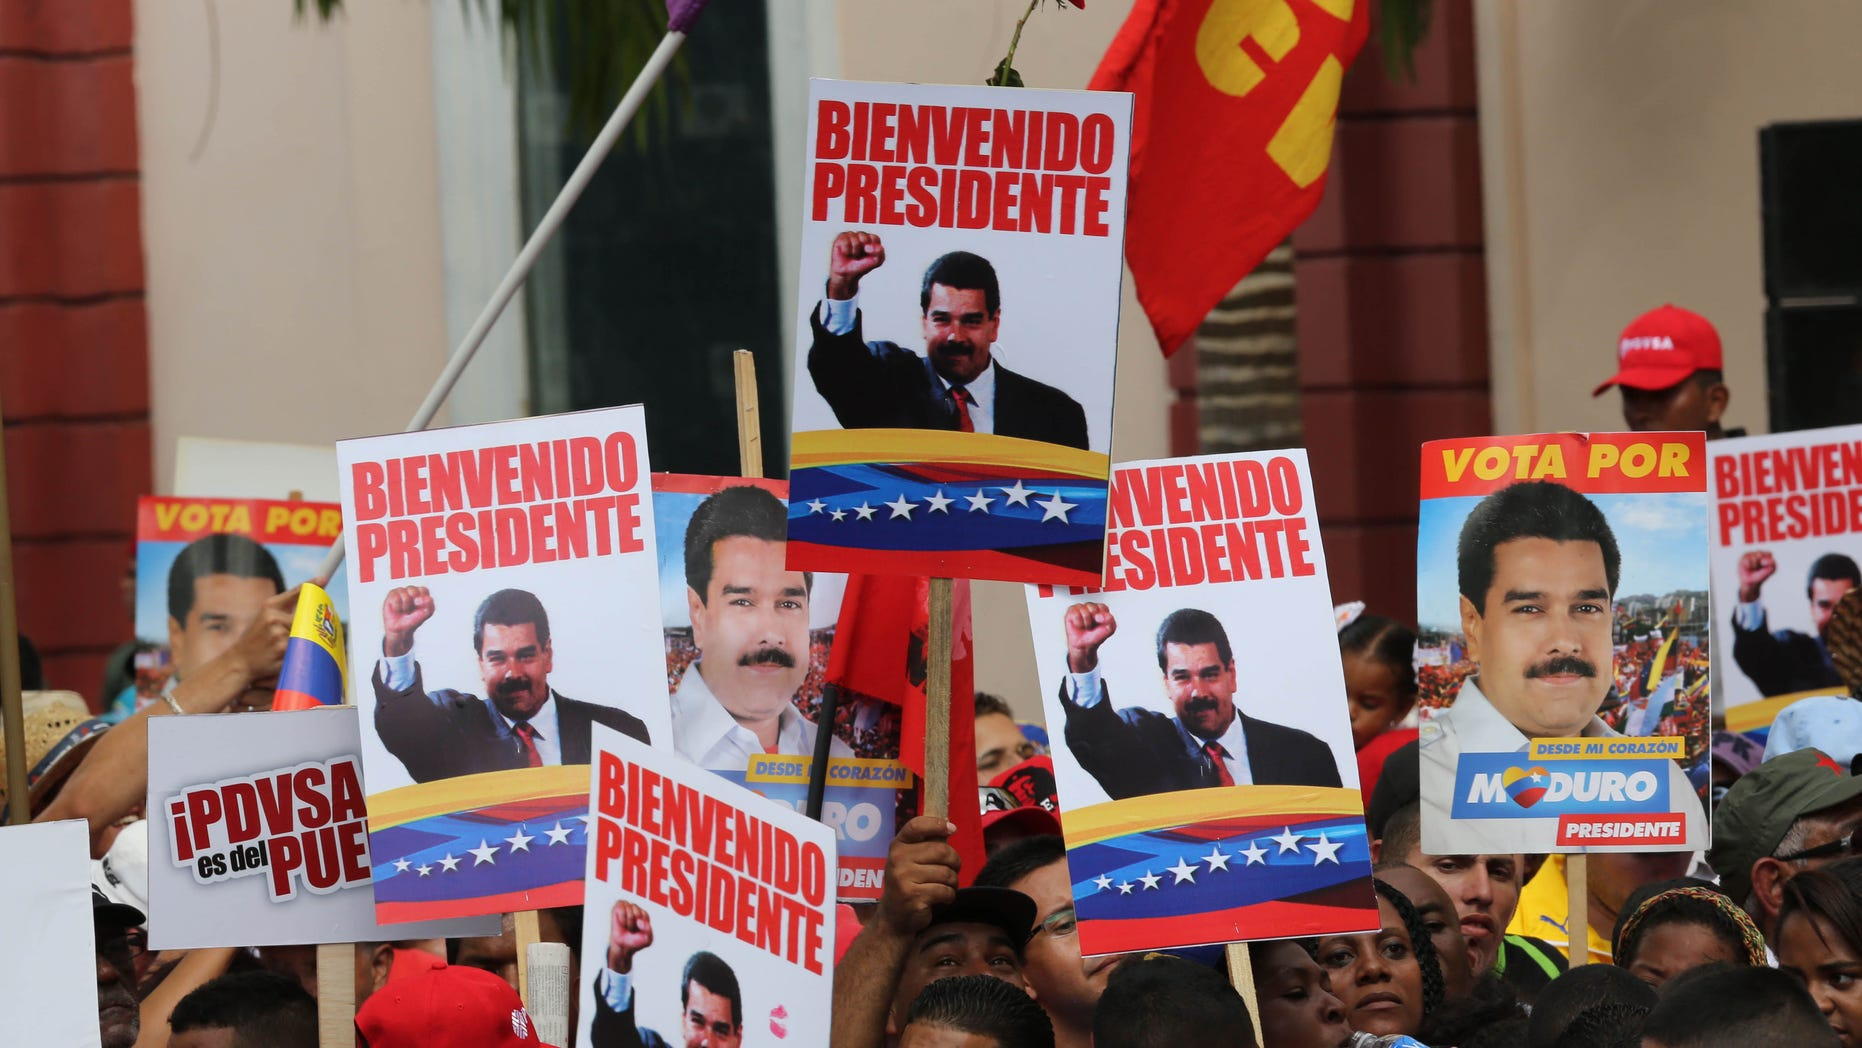 """Supporters hold placards with images of Venezuela's President Nicolas Maduro and a message that reads in Spanish; """"Welcome president,""""at the Miraflores Palace in Caracas, Venezuela, Saturday, Jan. 17, 2015, during a ceremony welcoming the leader back home. Maduro has been away visiting seven nations to seek loans and make a plea for lower oil production. The price of oil has crashed in recent months, driving Venezuelaâs oil-based economy to the brink. (AP Photo/Ariana Cubillos)"""